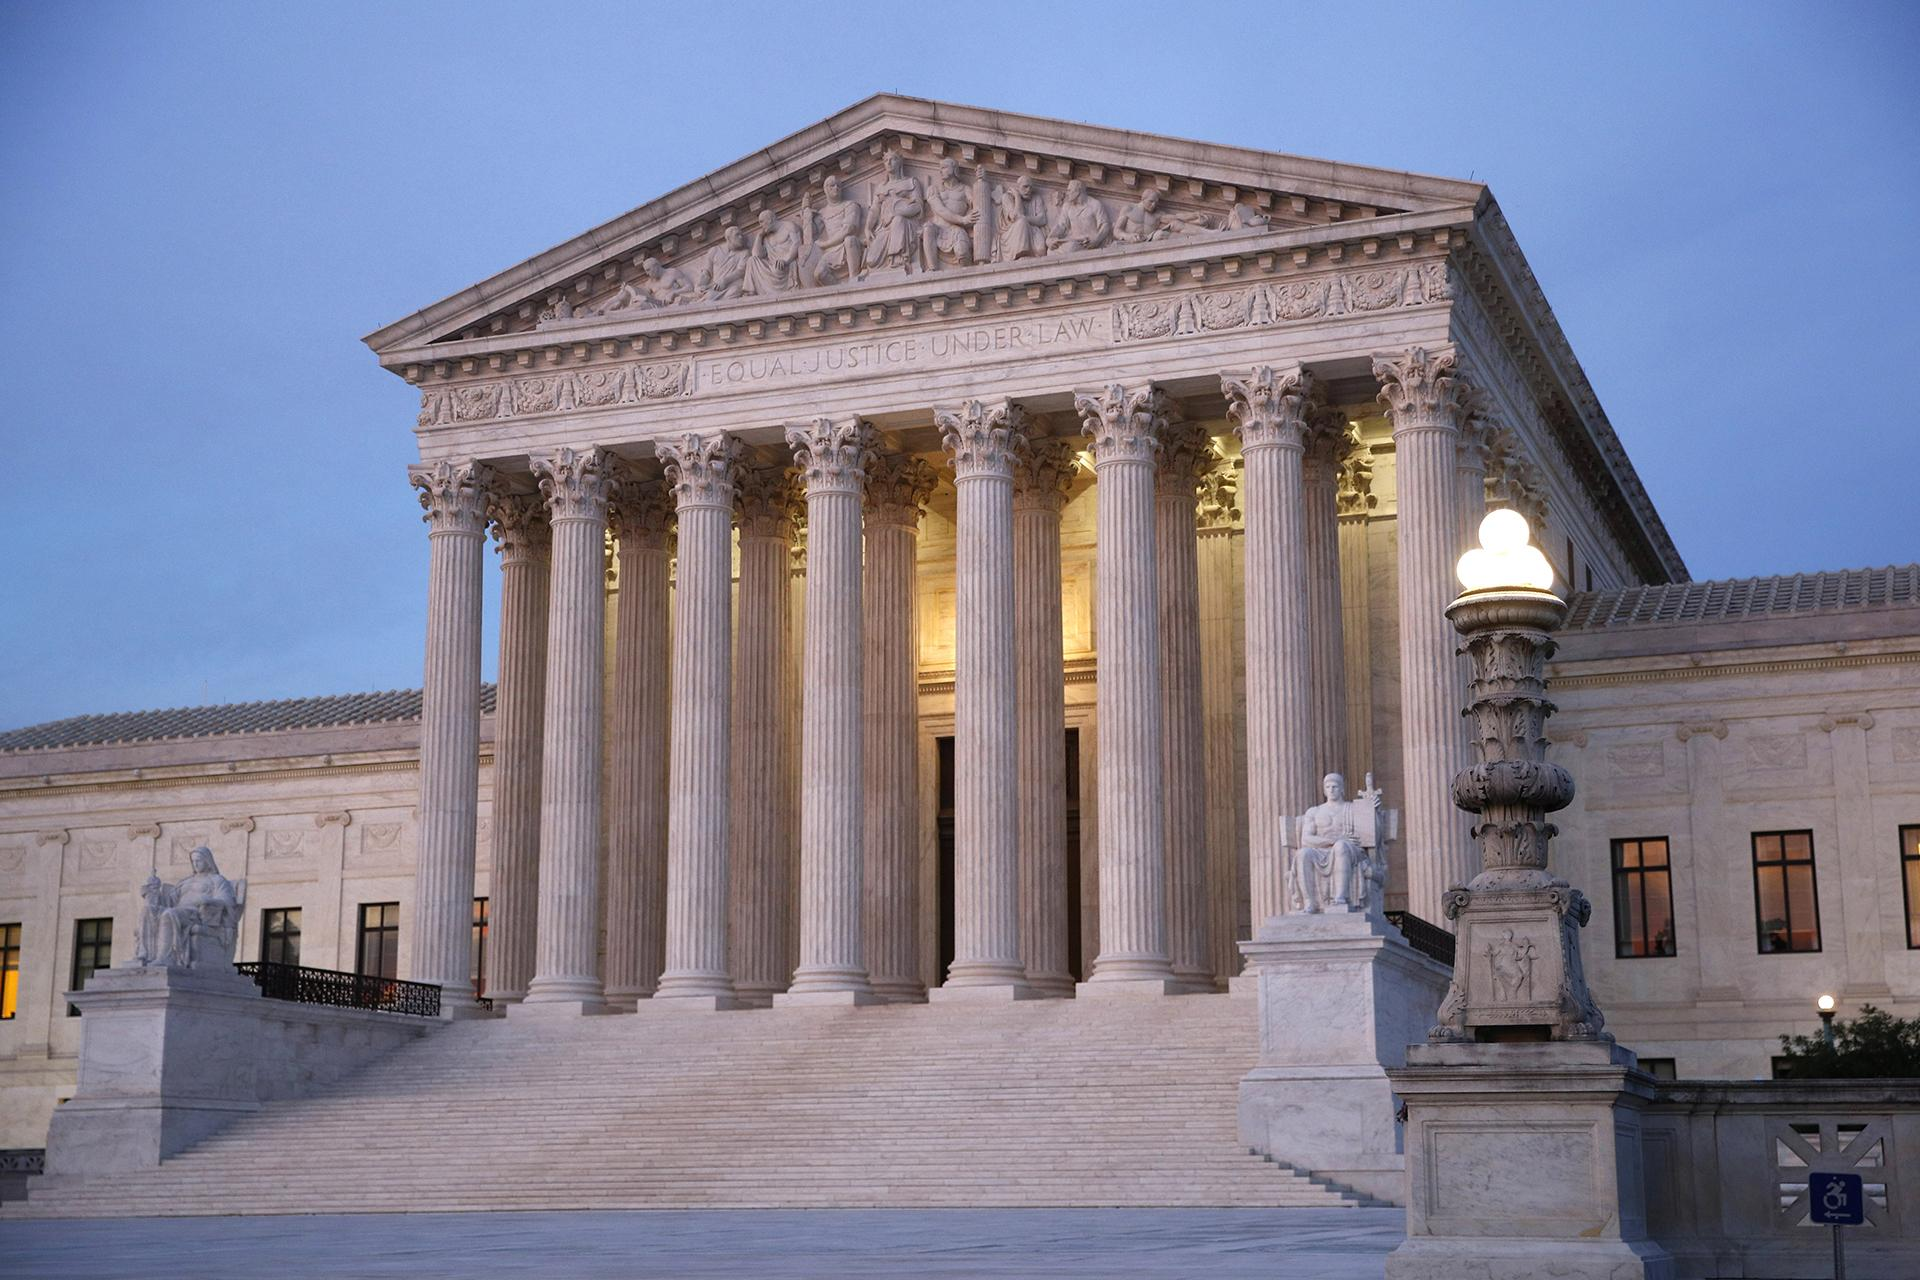 In this May 23, 2019 photo, the U.S. Supreme Court building at dusk on Capitol Hill in Washington. (AP Photo / Patrick Semansky)